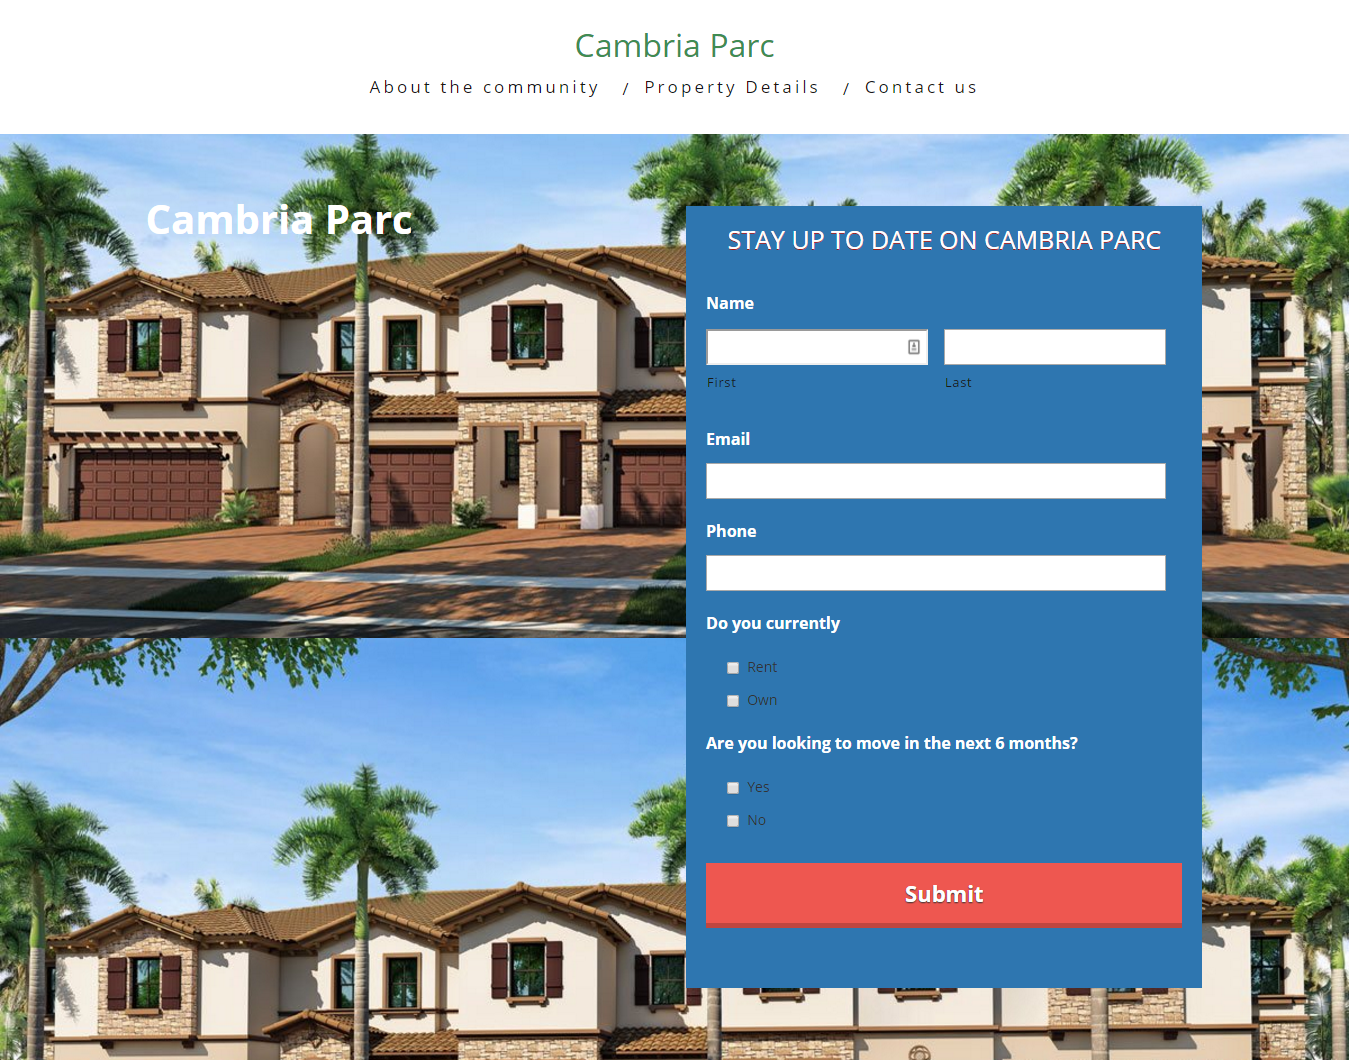 Cambria Parc Boynton Beach offers two story home designs with garages